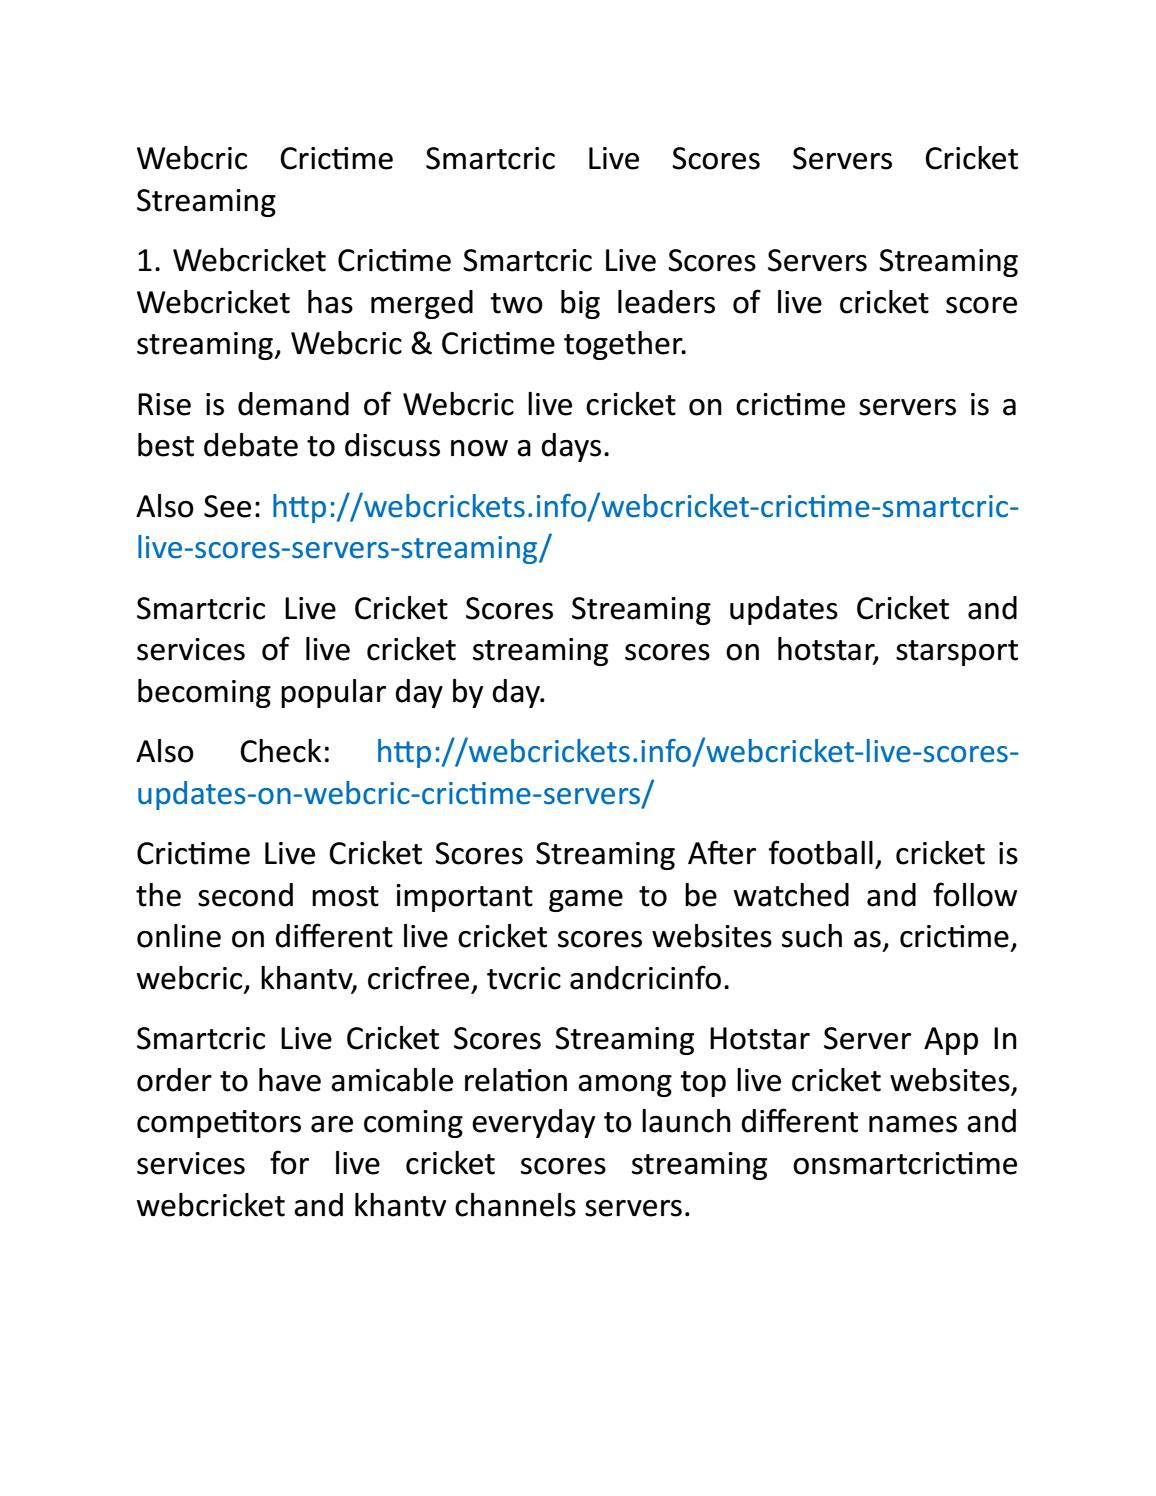 Webcric Crictime Smartcric Live Scores Servers Cricket Streaming Http Www Webcrickets Info By Http Www Pakifashion Com Issuu